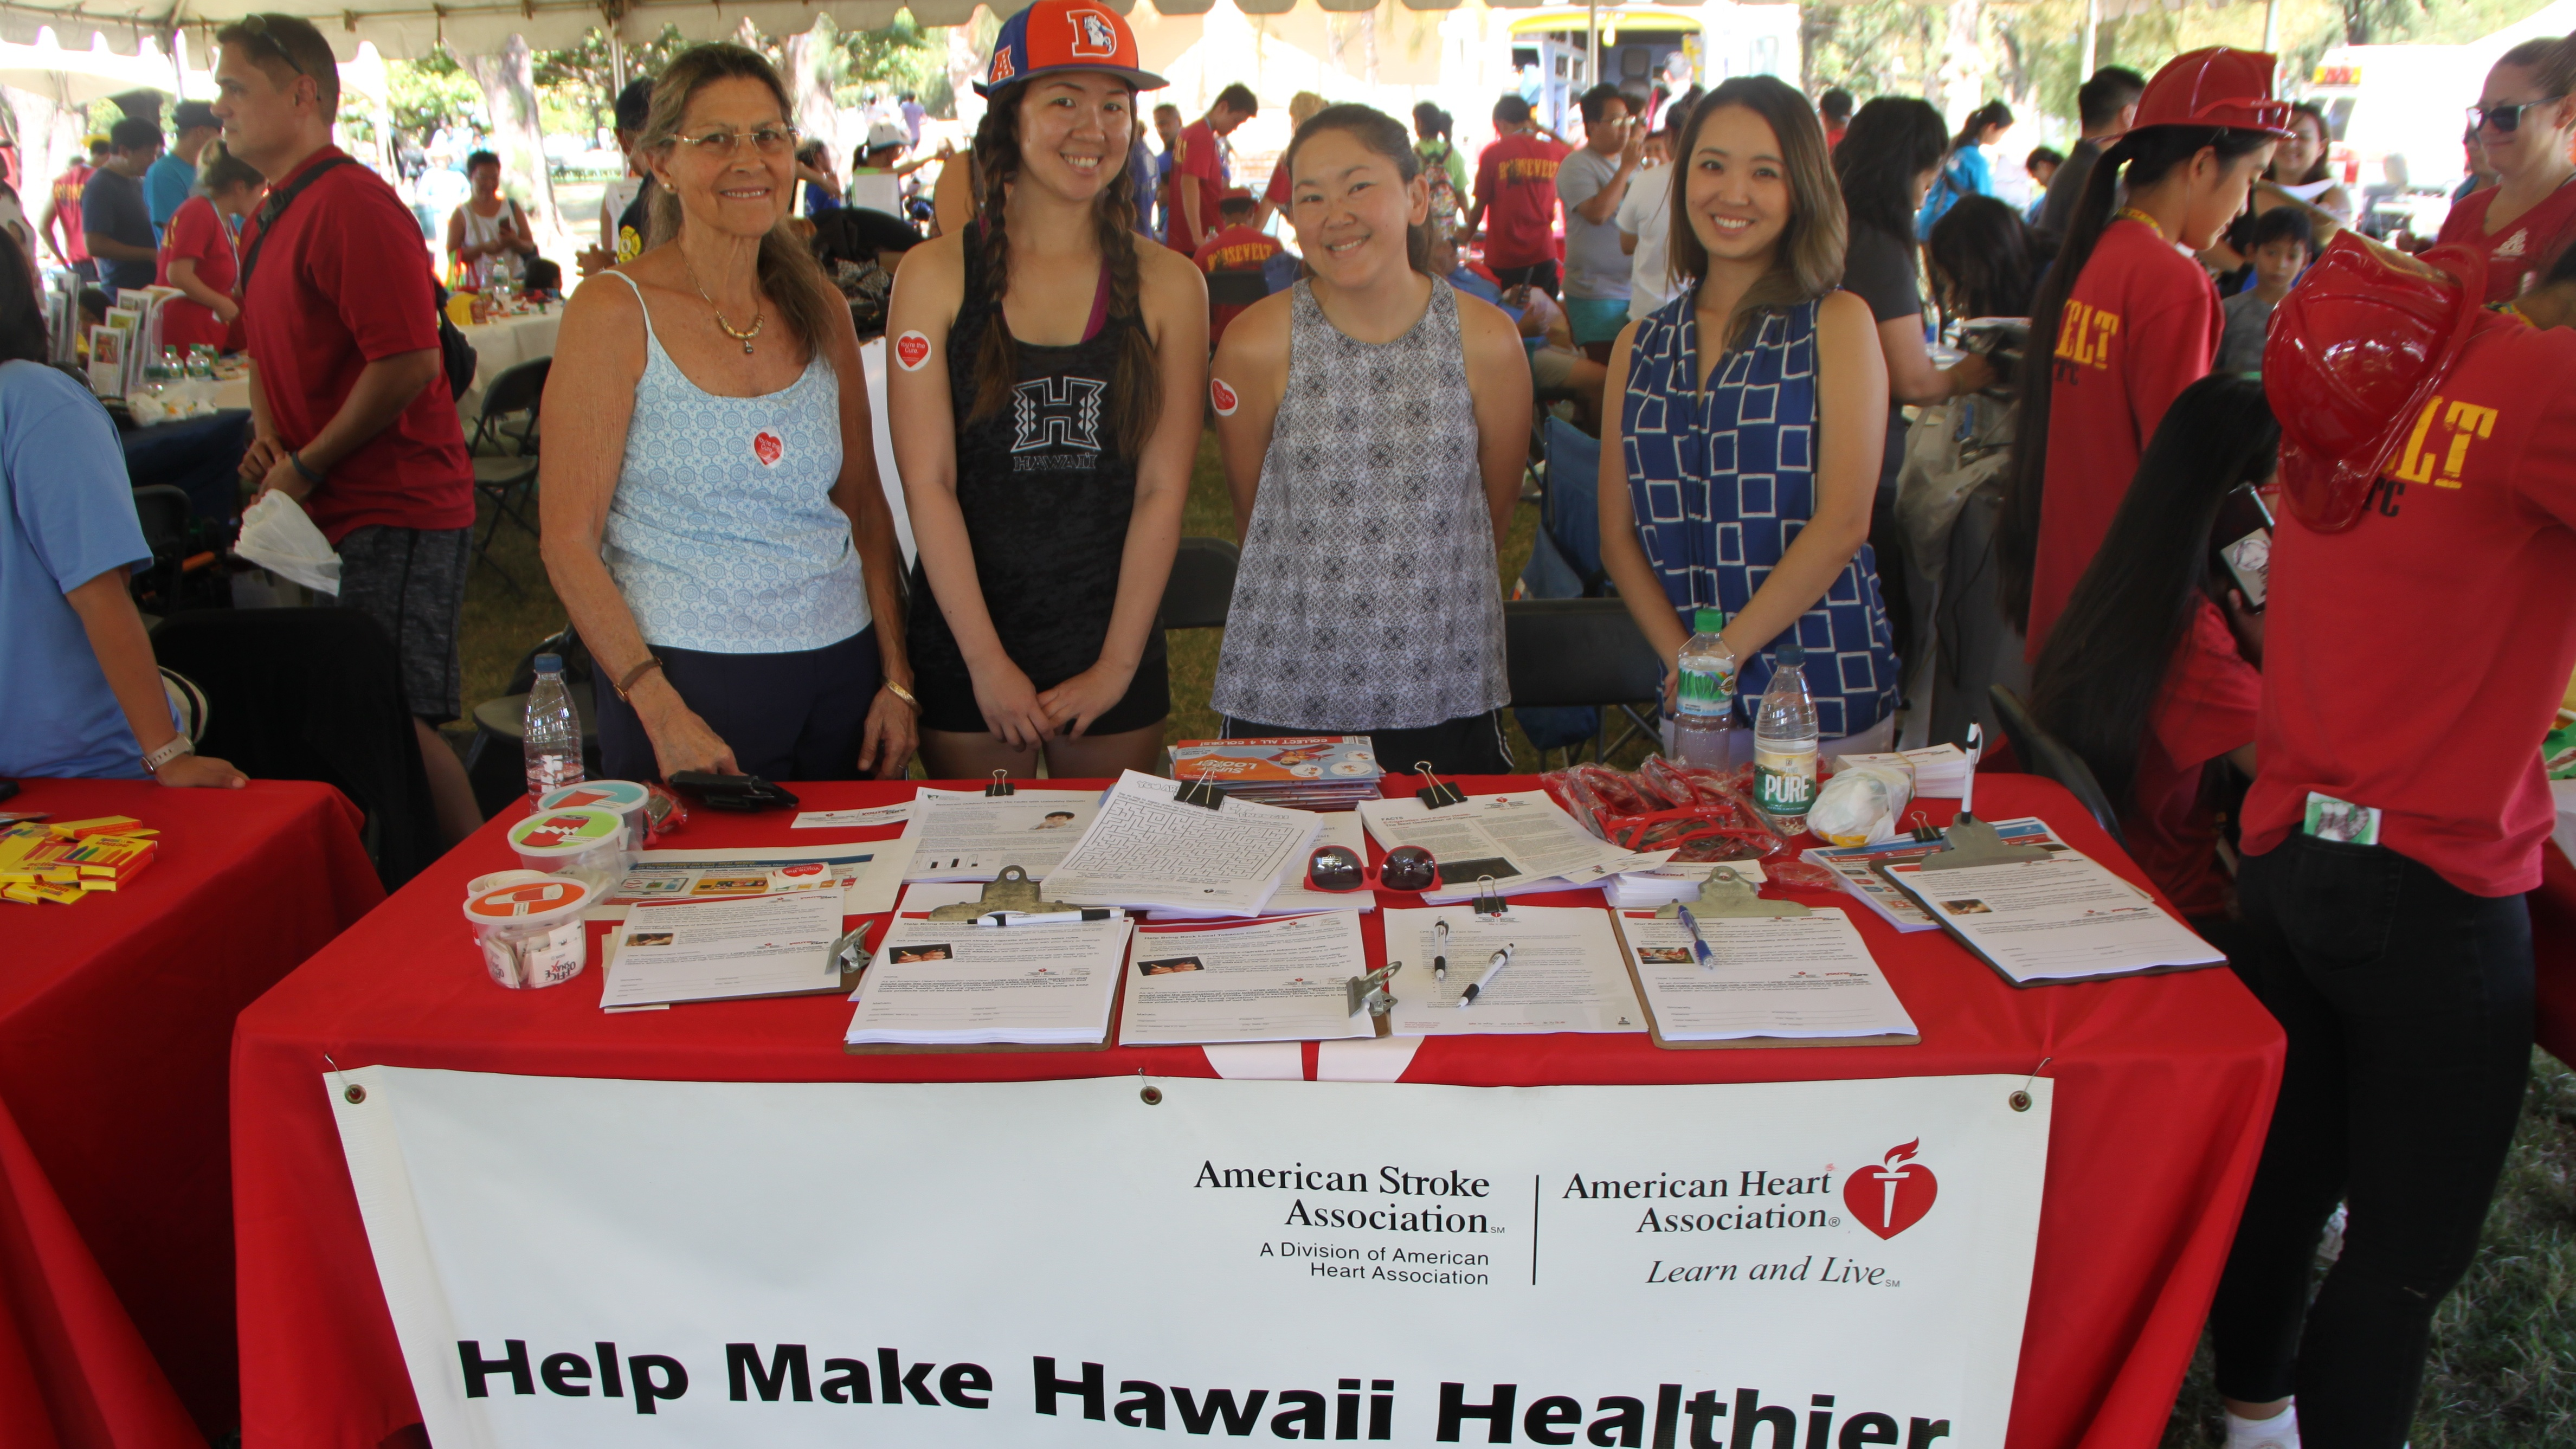 4 women standing at a recruitment table